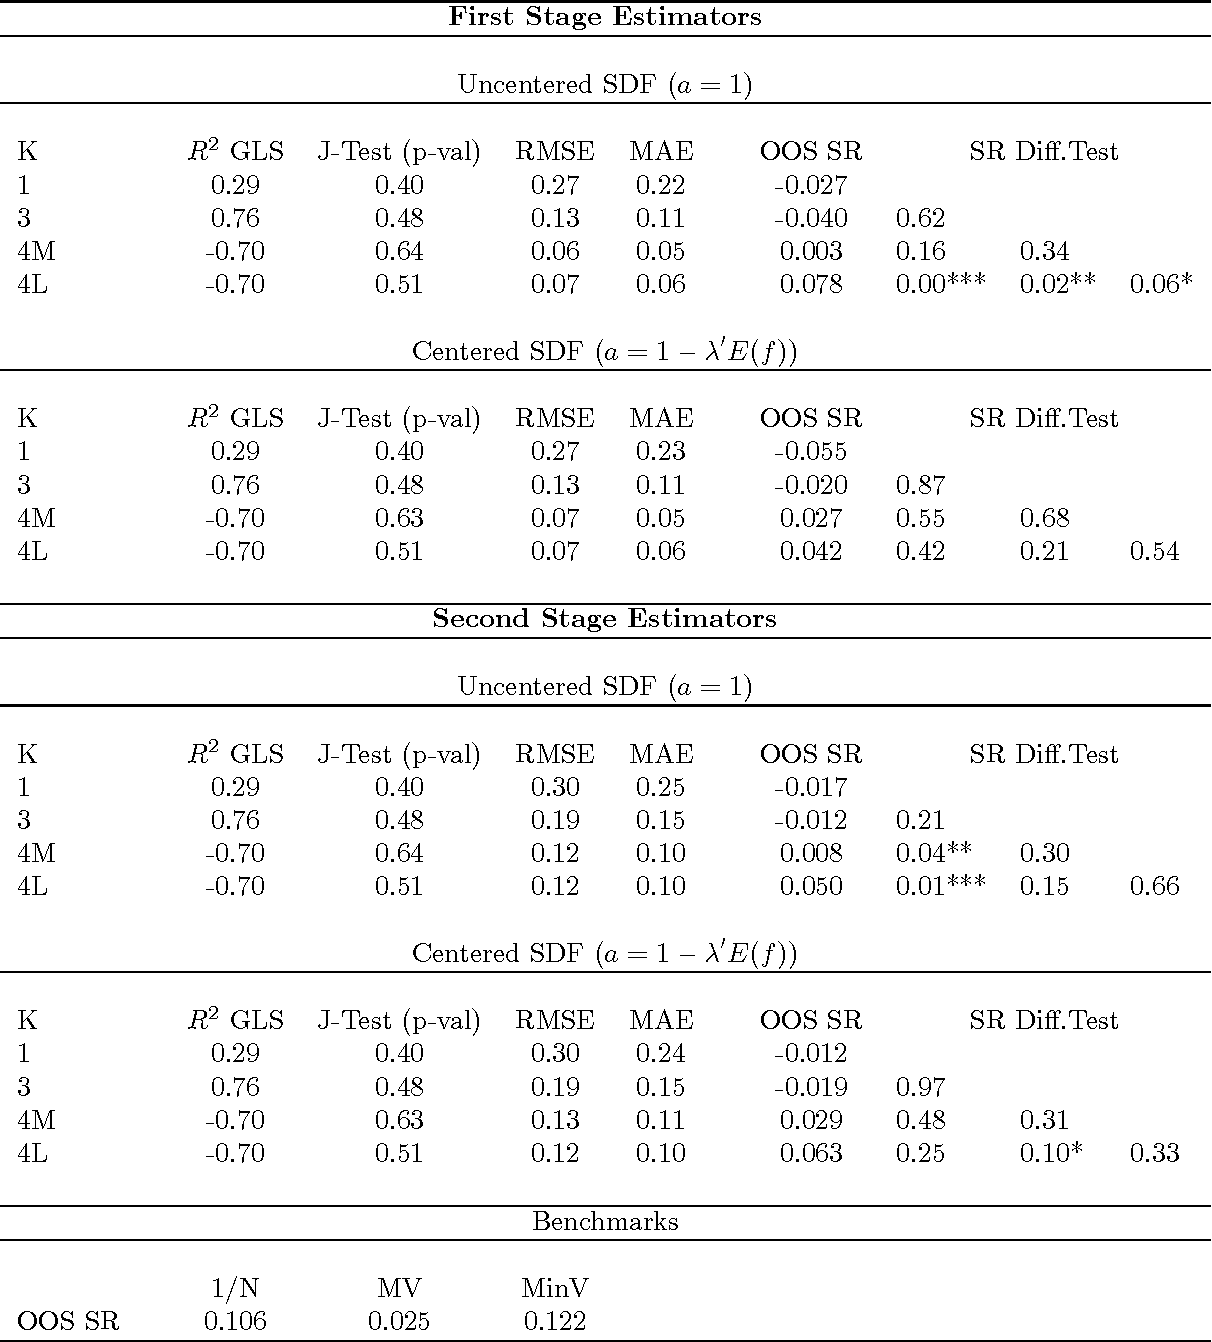 Table 5: Linear Asset Pricing Model Estimation and MV Portfolio Performance